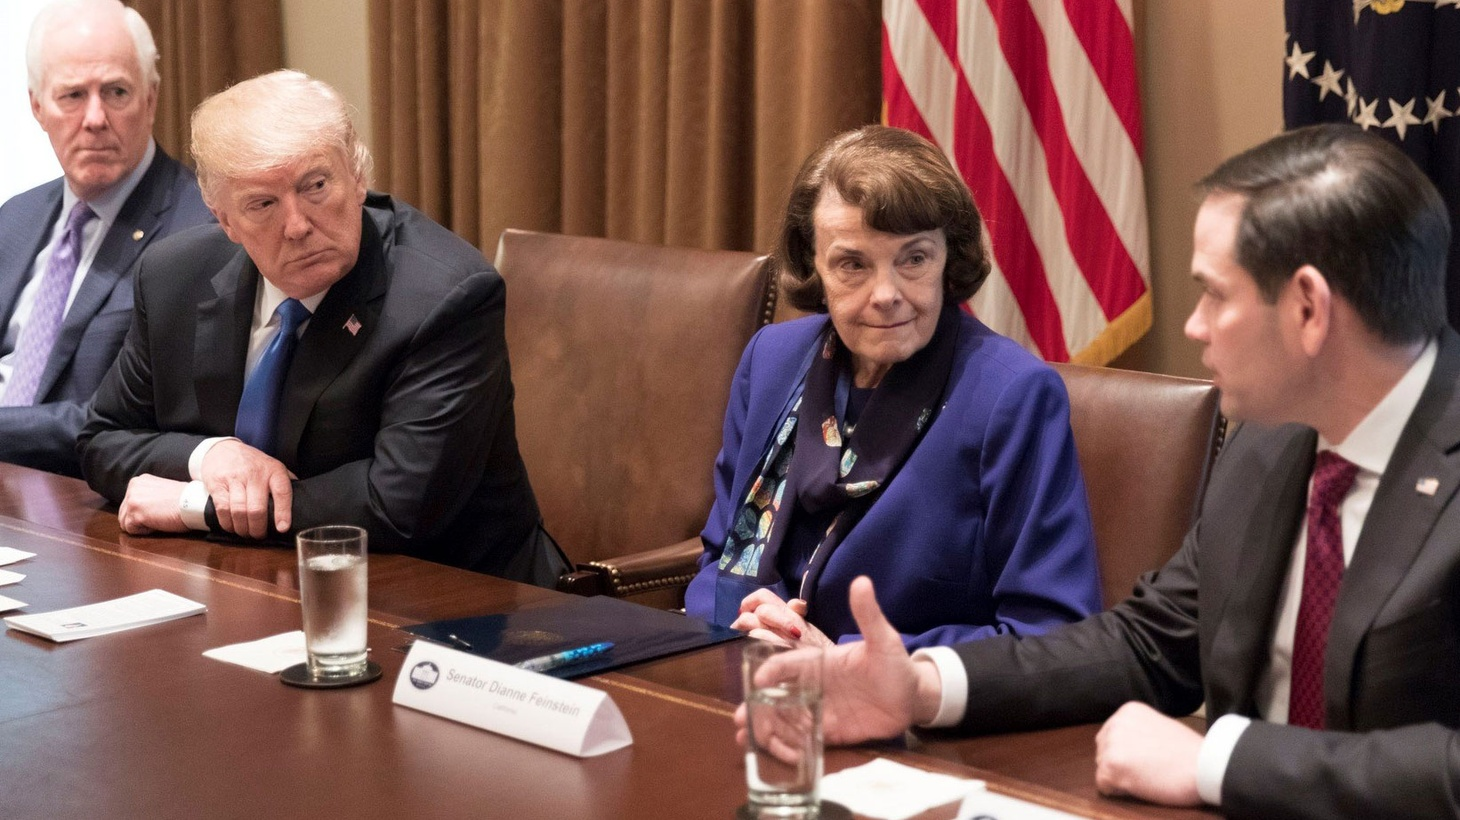 We speak with Sen. Feinstein about her forum with Kevin de León on Wednesday; how she and Democrats handled the Brett Kavanaugh hearings and allegations from Christine Blasey Ford; whether a single-payer healthcare system works, and more.